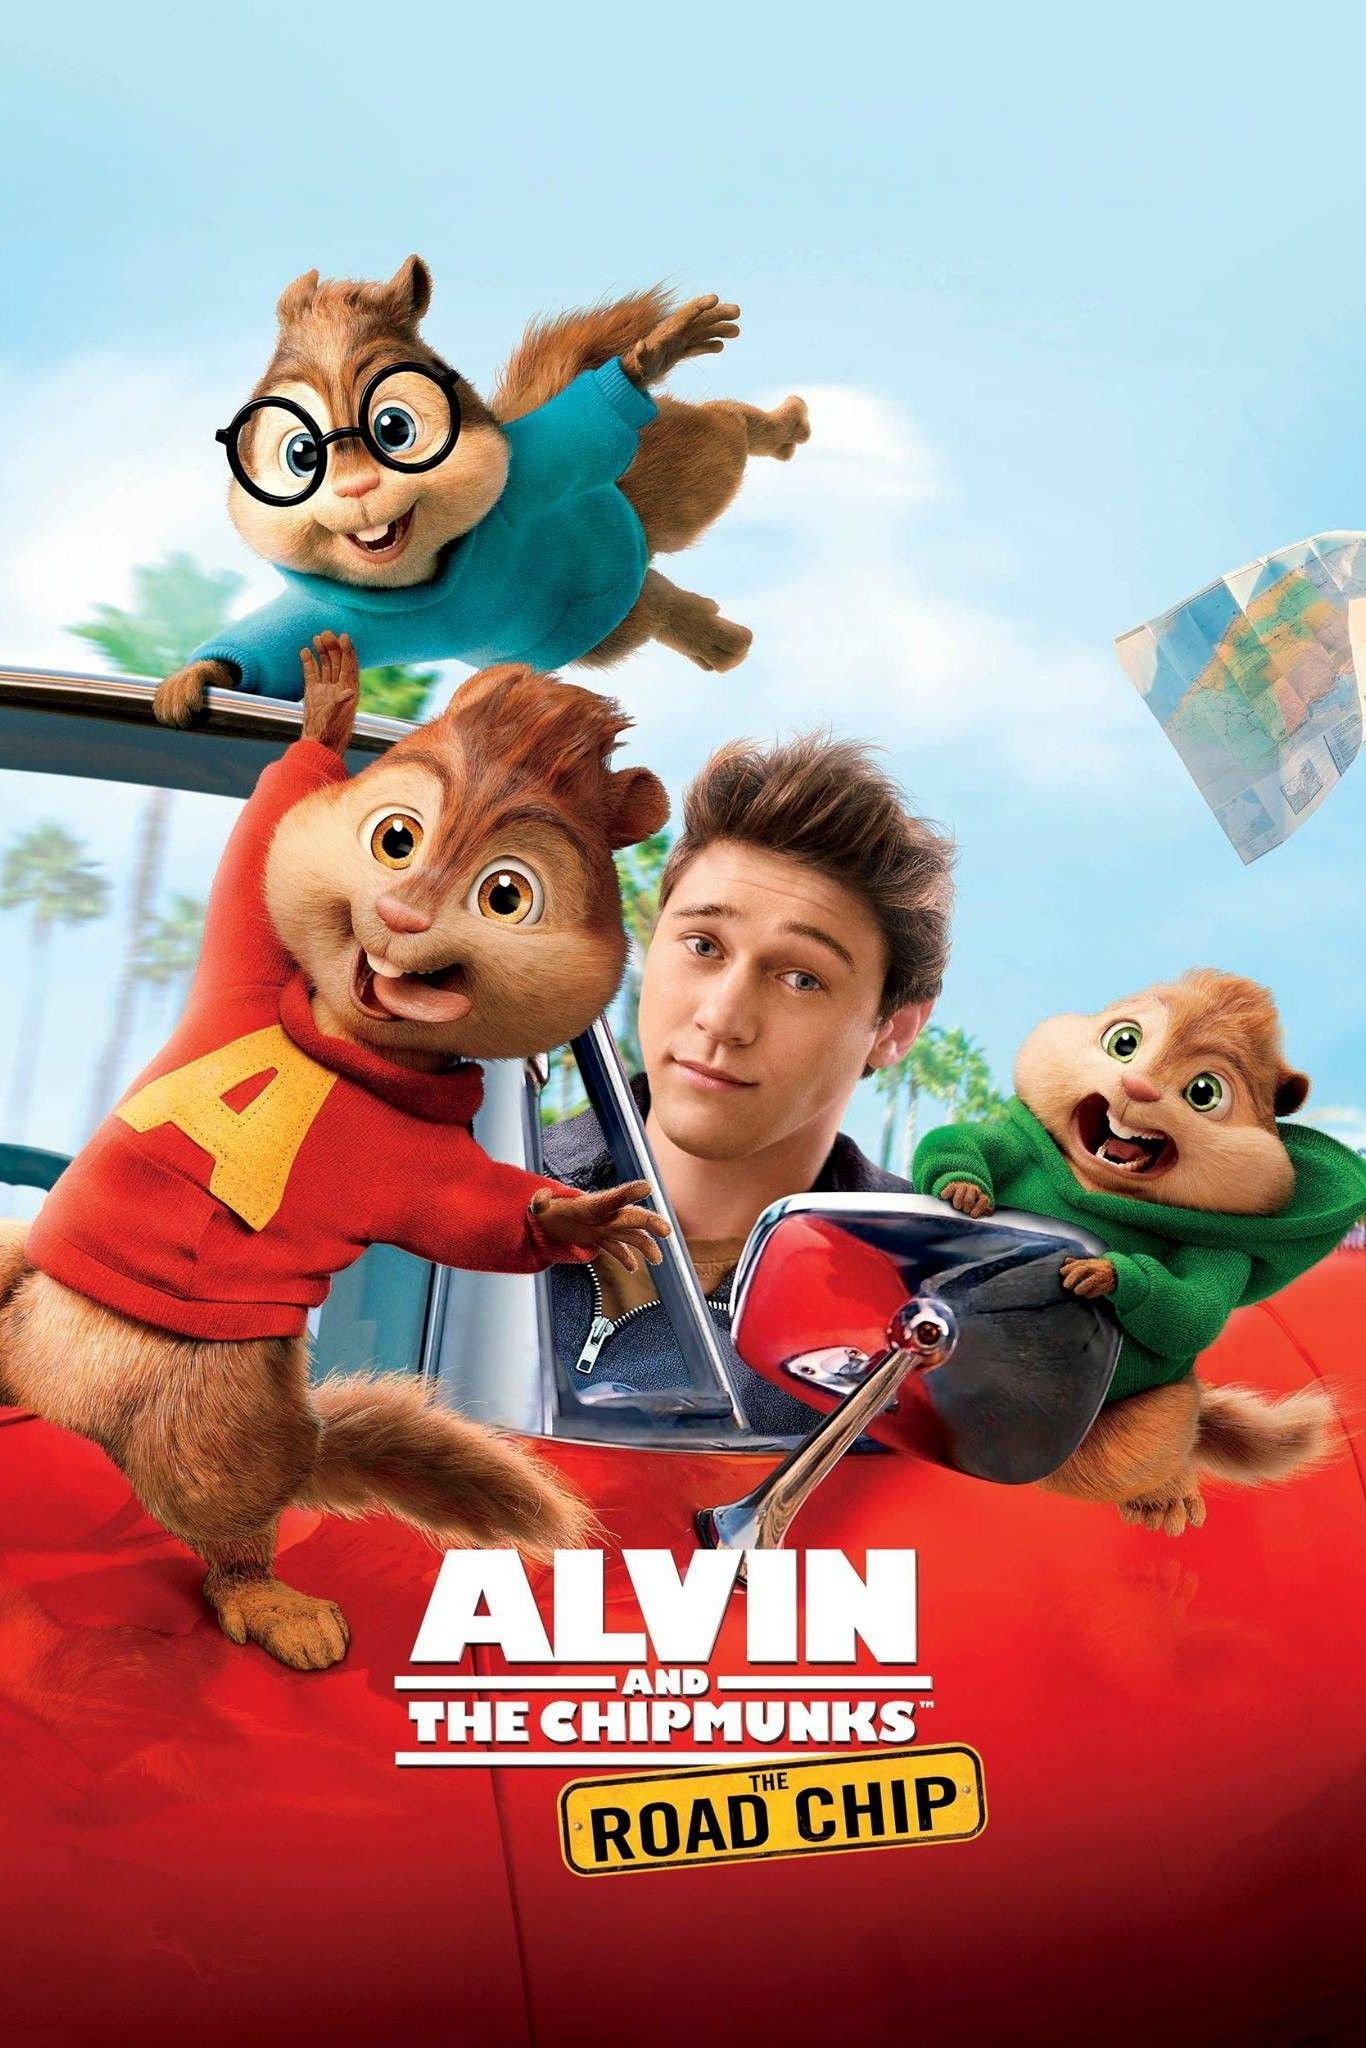 Alvin and the Chipmunks: The Road Chip (2015) - Watch Movies Free Online